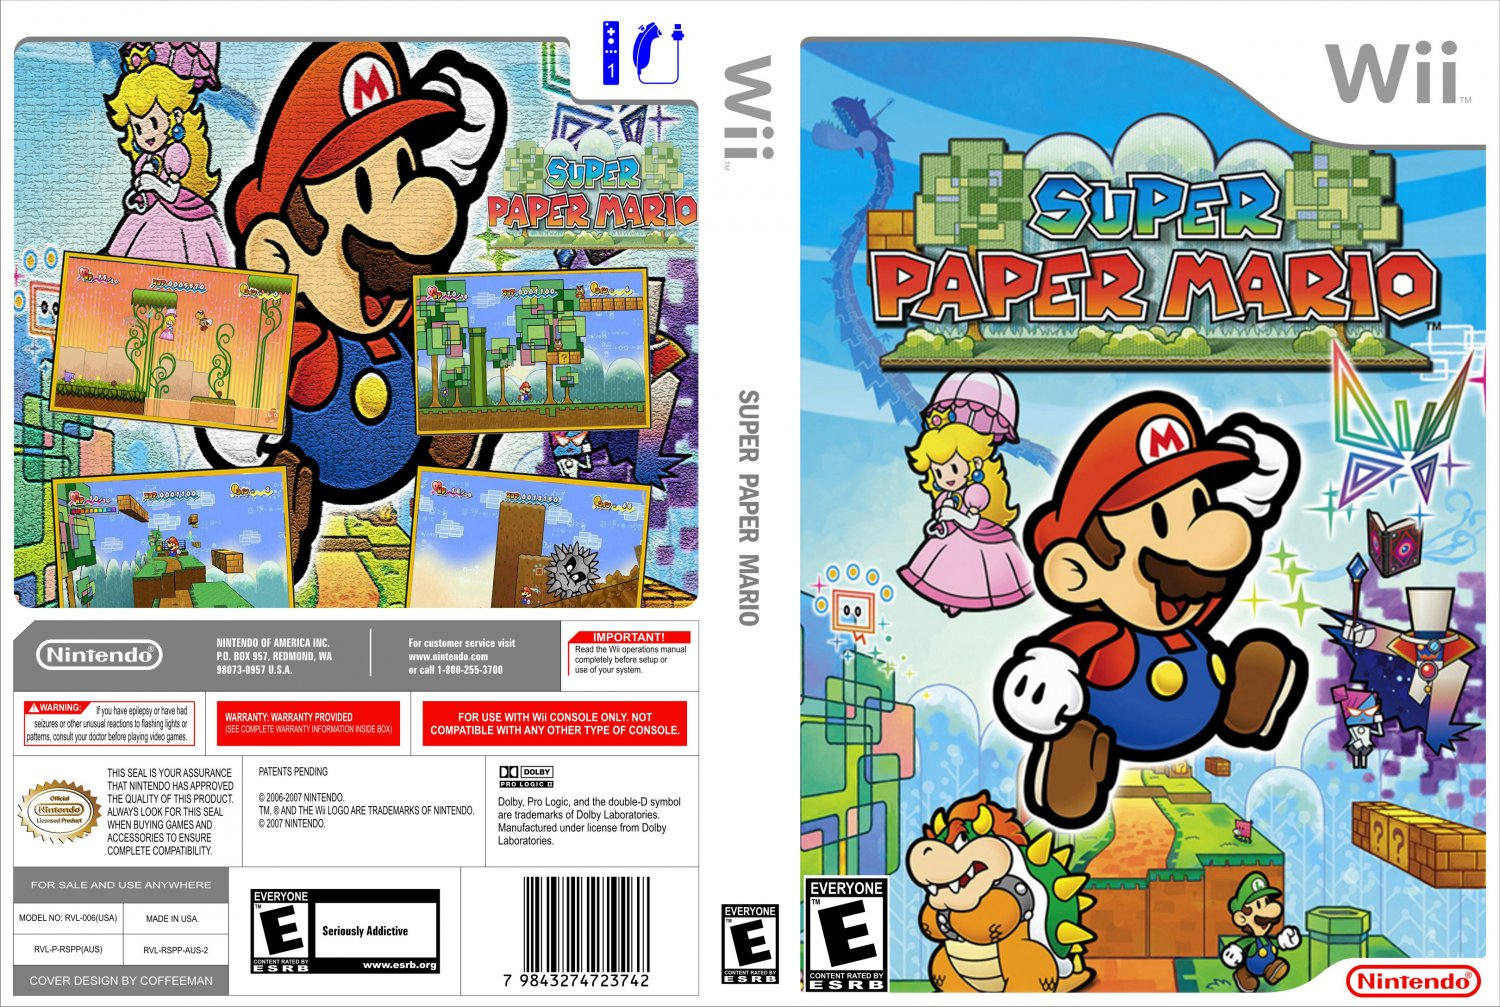 nintendo sony video game case essay Case study of the video game industry marketing essay the rivalry among nintendo, sony upon analyzing the nintendo wii case study 33, the rise of video.